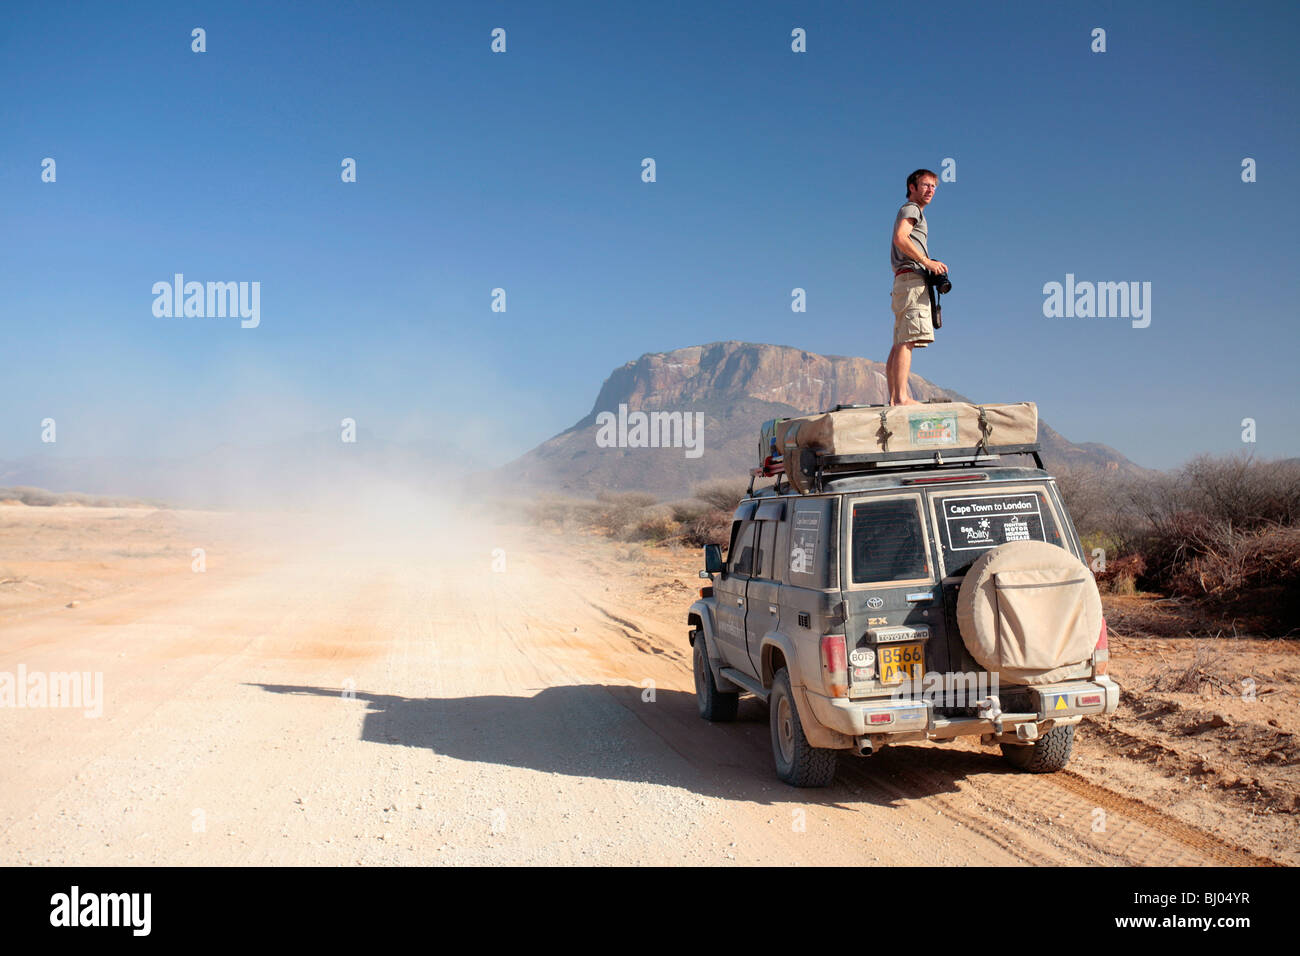 Man on the foor of an all terrain vehicle in Northern Kenya as another vehicle goes past - Stock Image